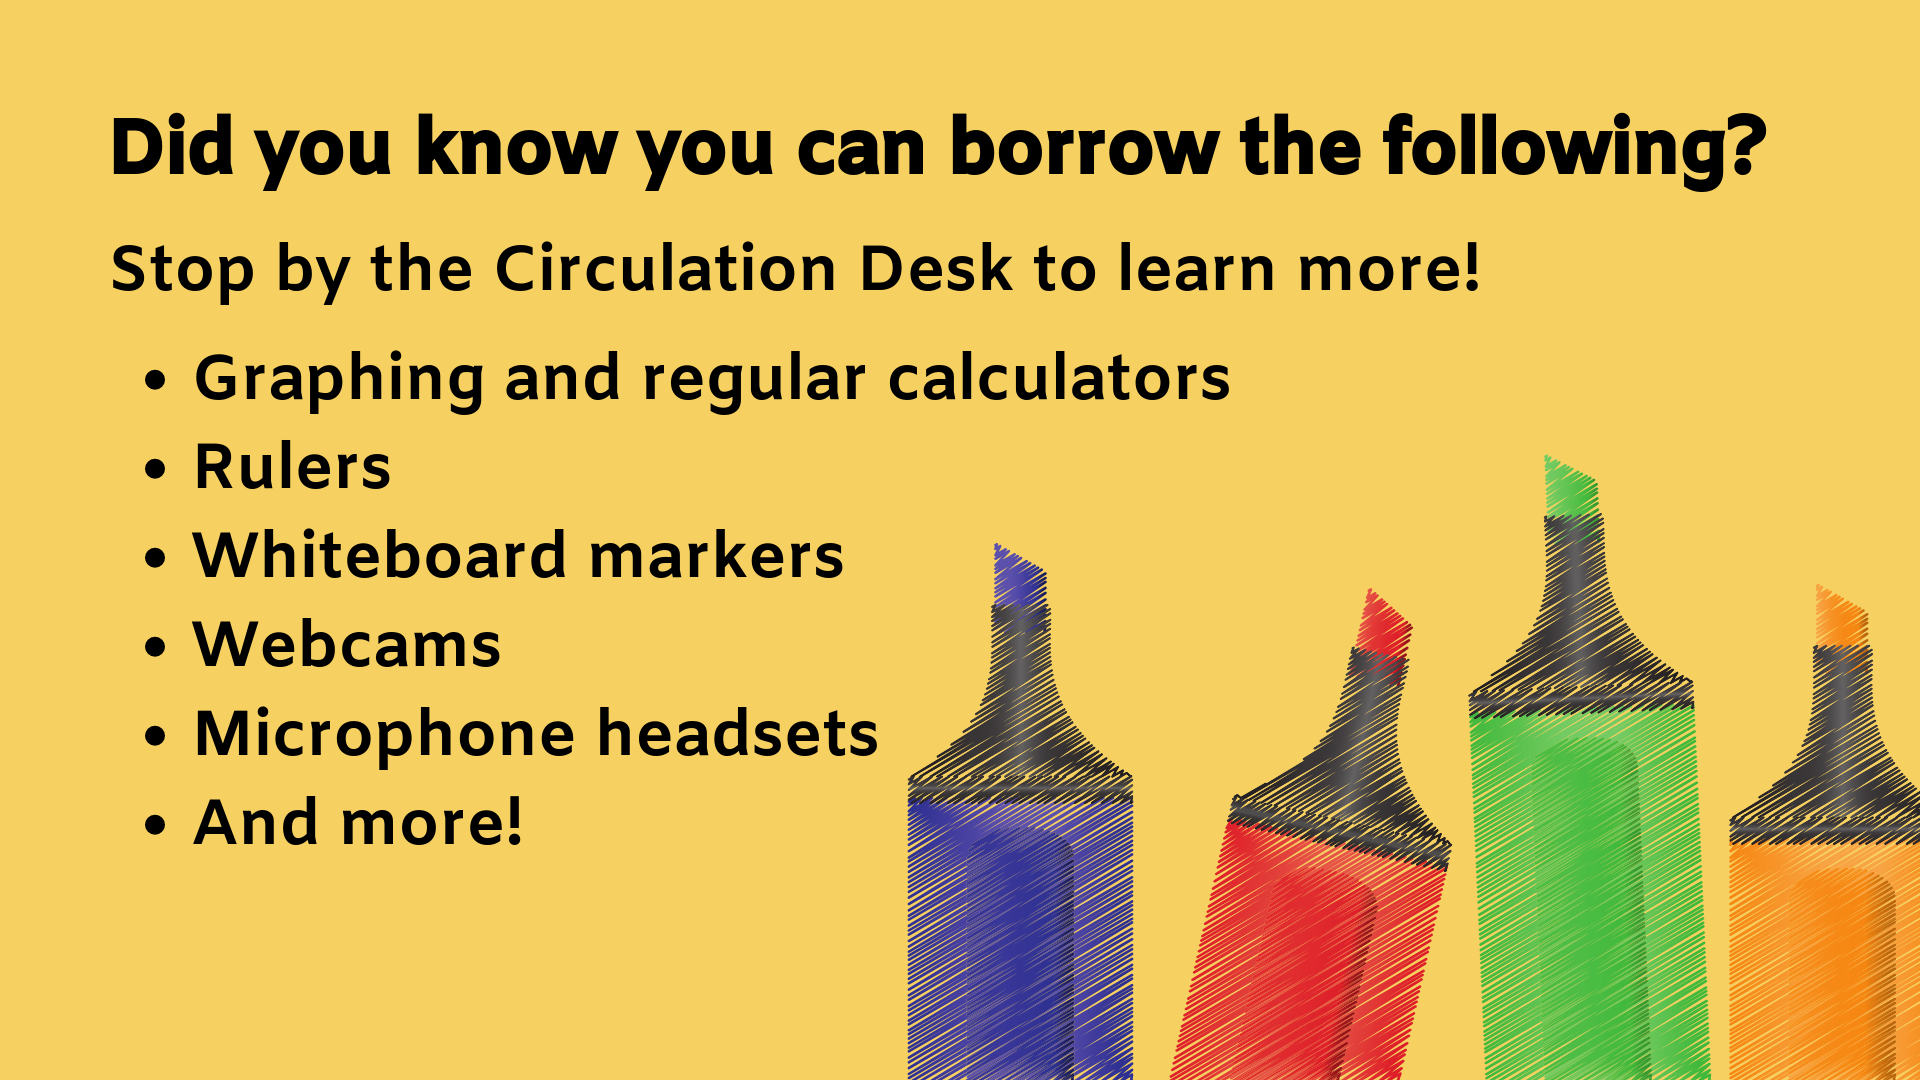 Did you know you can borrow the following? Stop by the Circulation Desk to learn more! Graphing and regular calculators Rulers Whiteboard markers Webcams Microphone headsets And more!